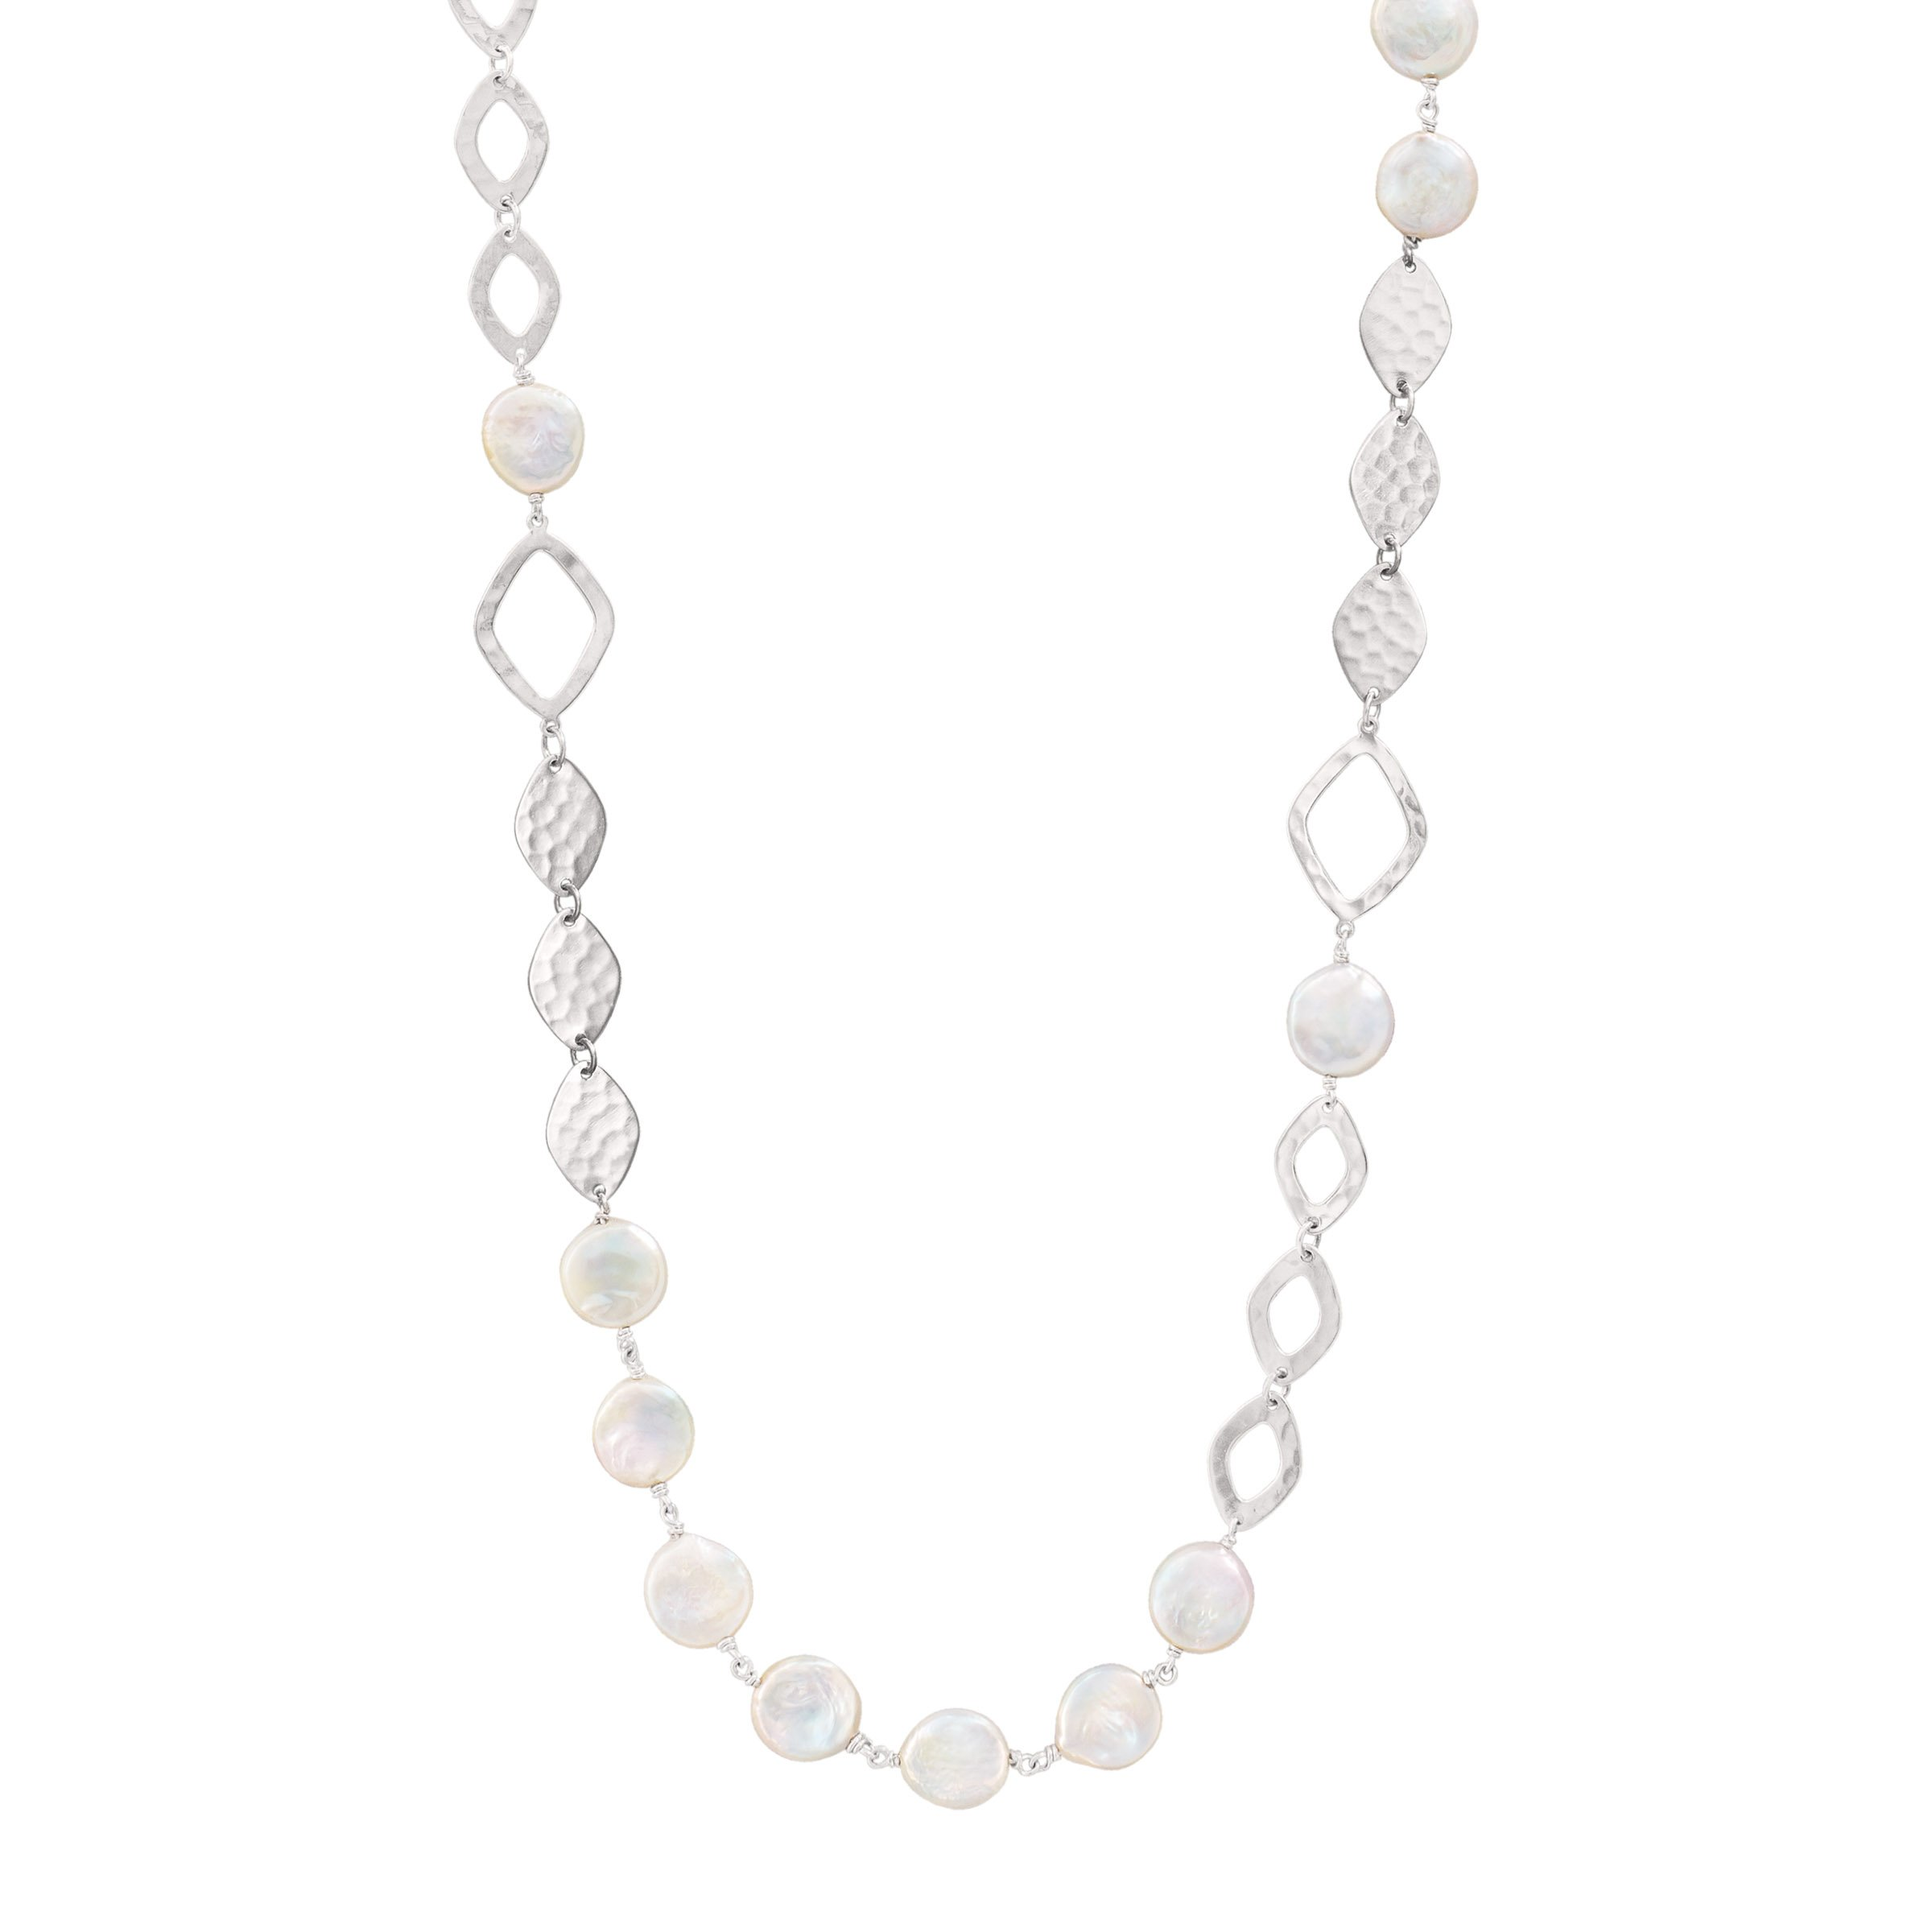 Silpada 'Perfect Pearl' Sterling Silver and Pearl (11mm) Necklace, 36''